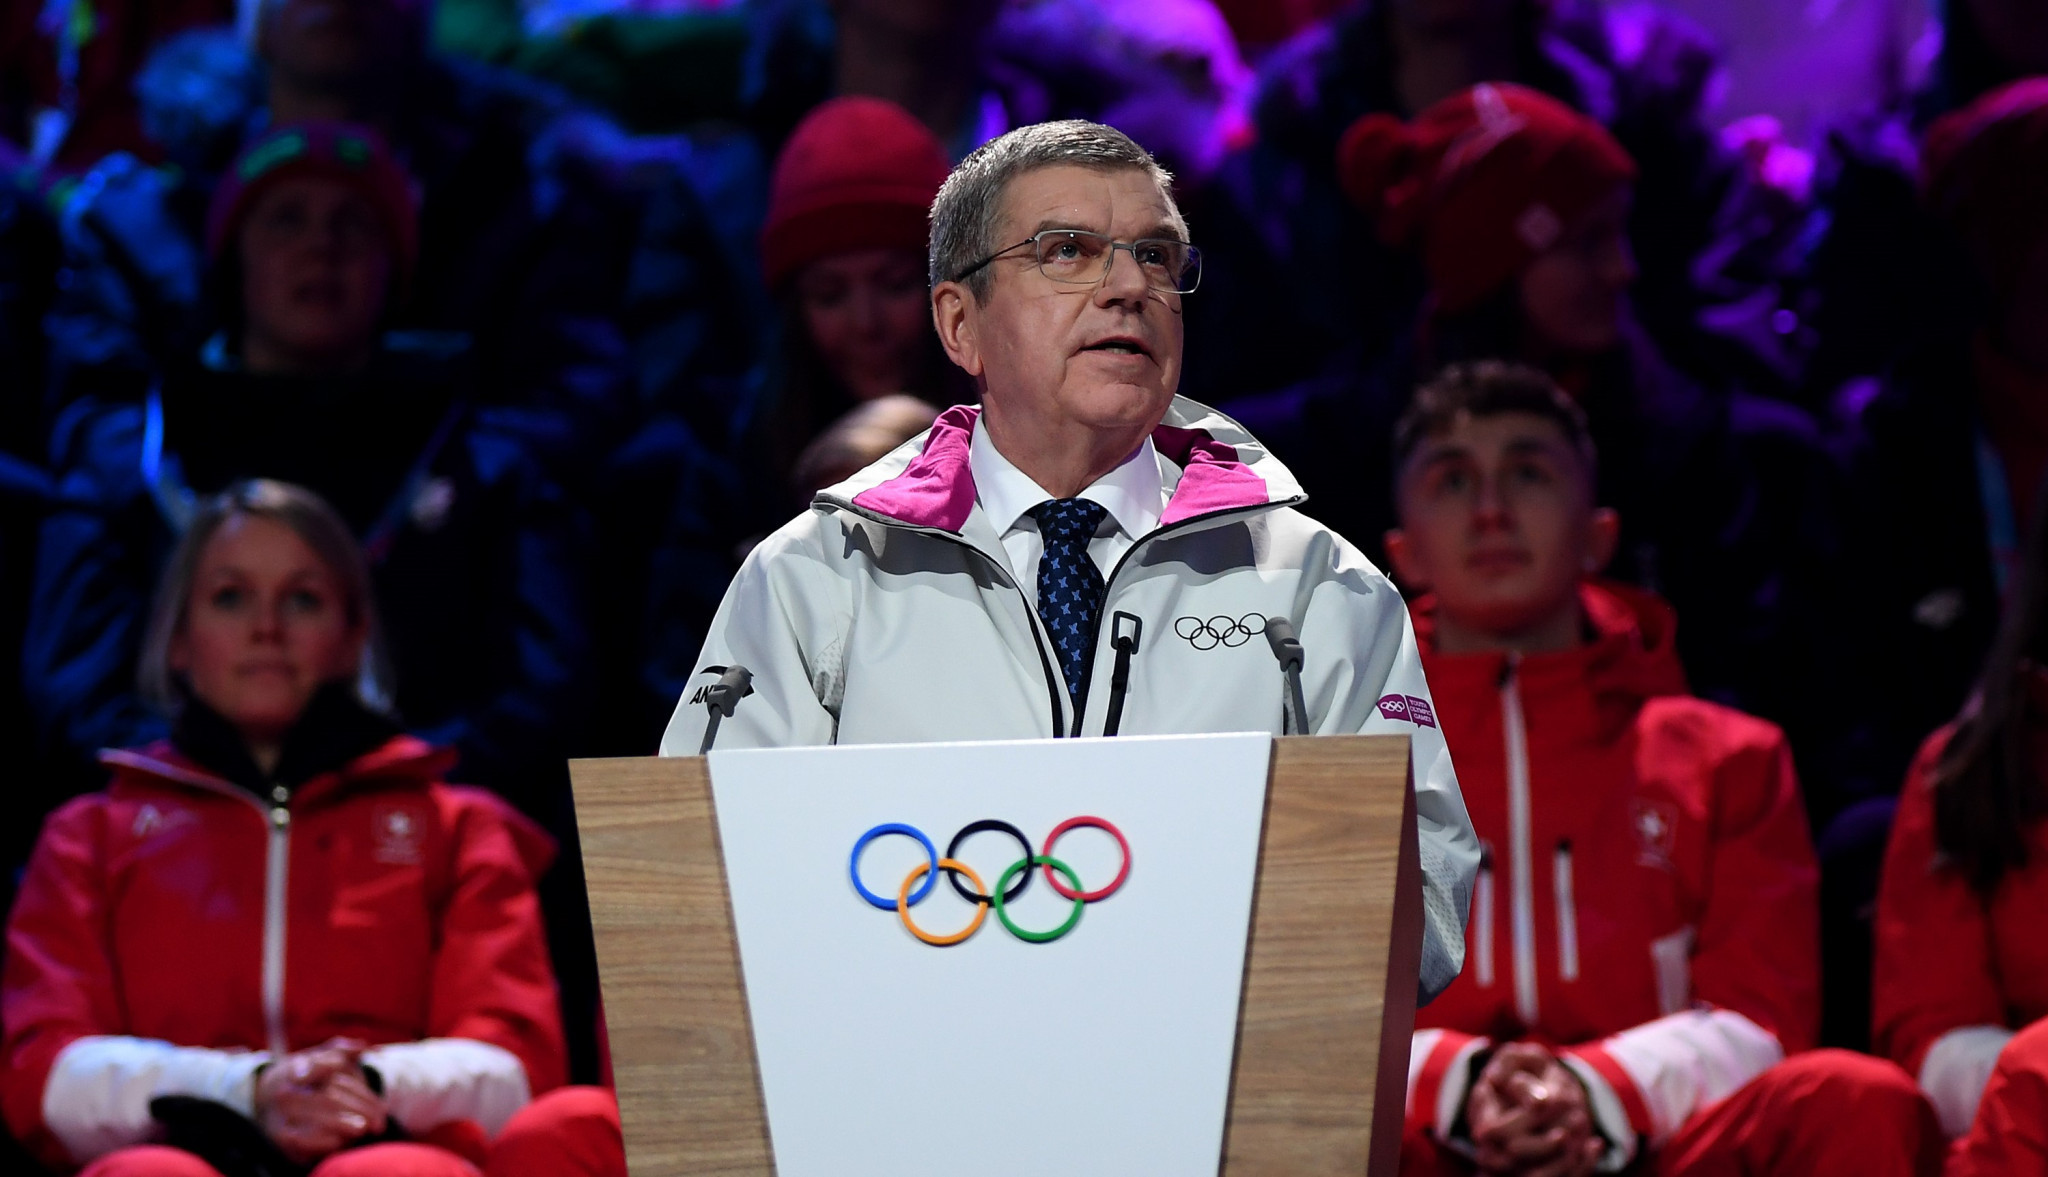 Thomas Bach is poised to lead the IOC until 2025 ©Getty Images